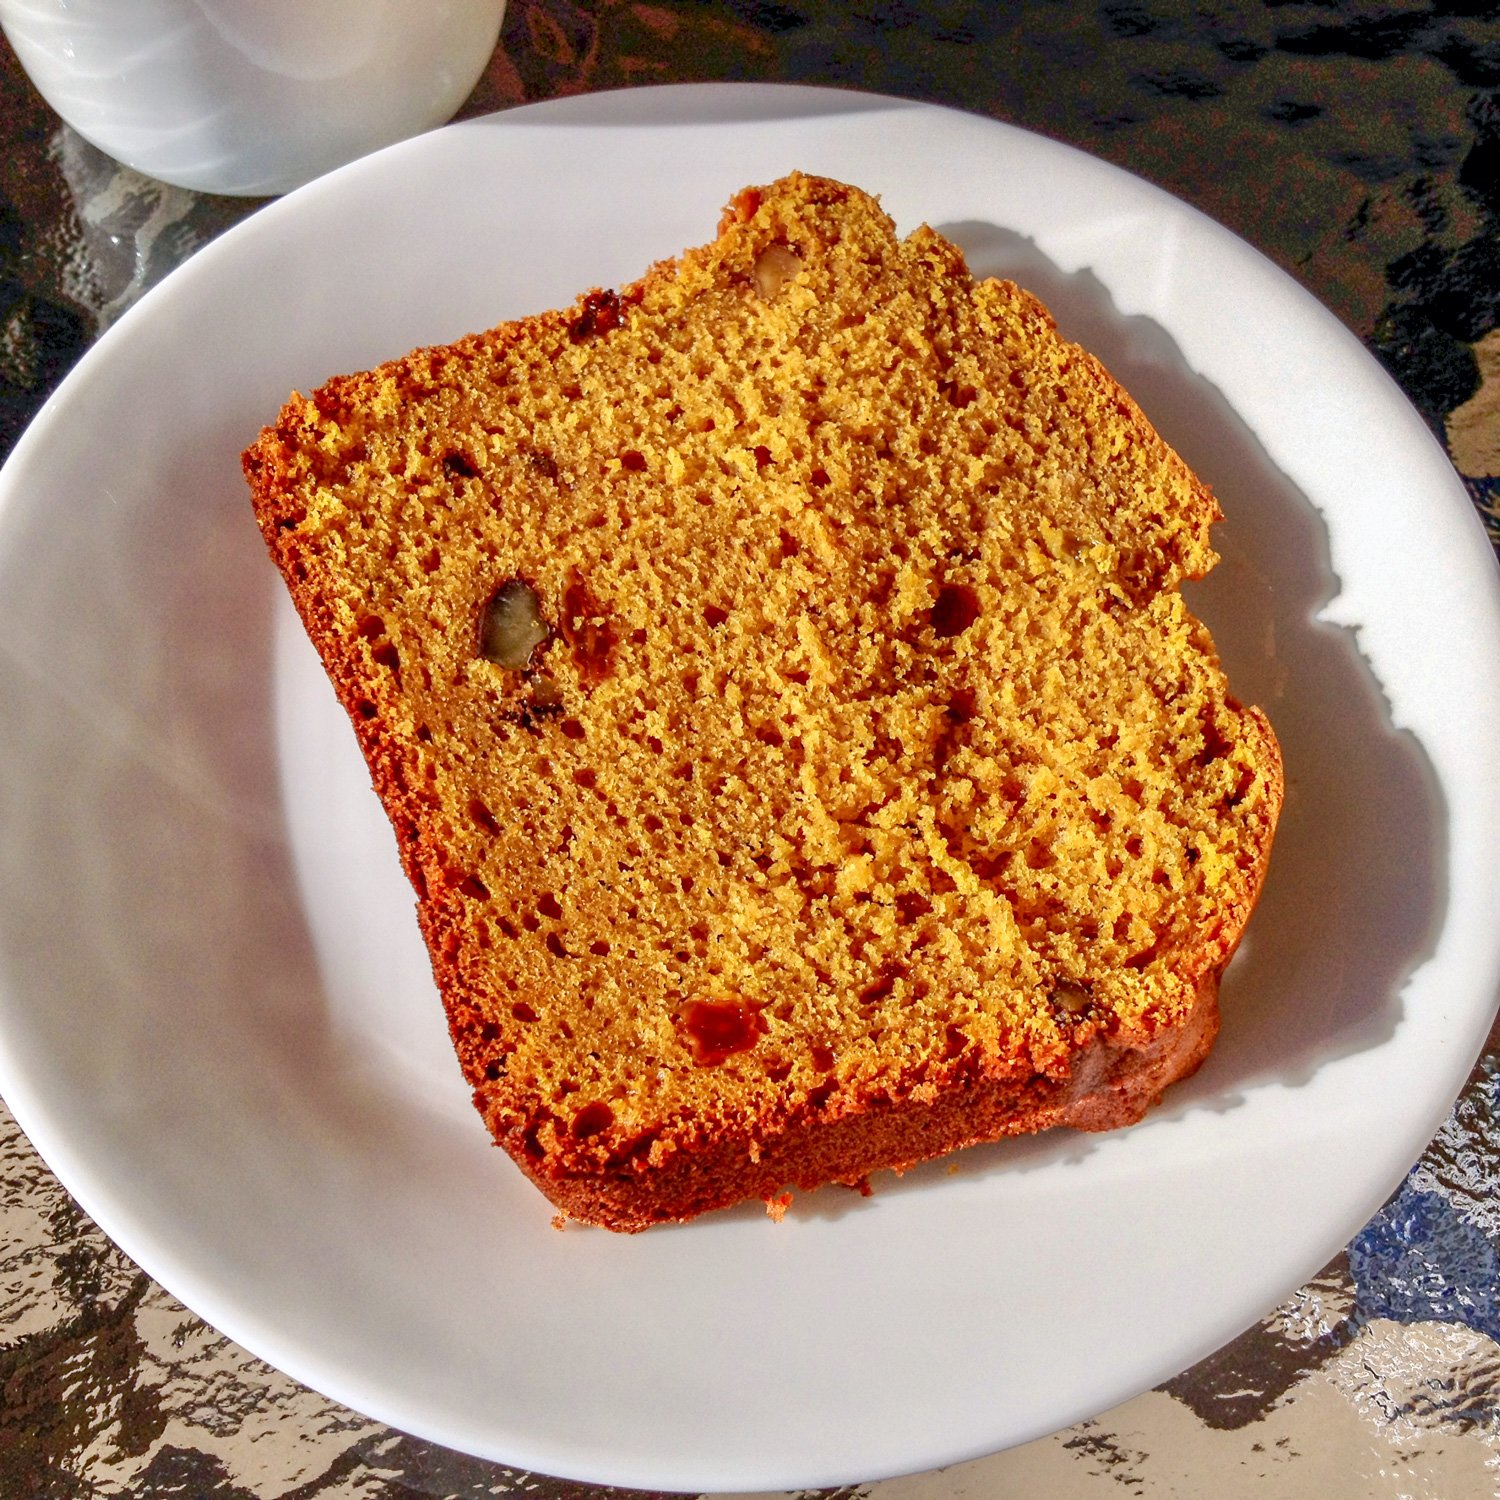 This Pumpkin Bread With Walnuts And Raisins Recipe is a great one for chilly days in the fall or winter. Serve it with a cup of your favorite coffee or tea.